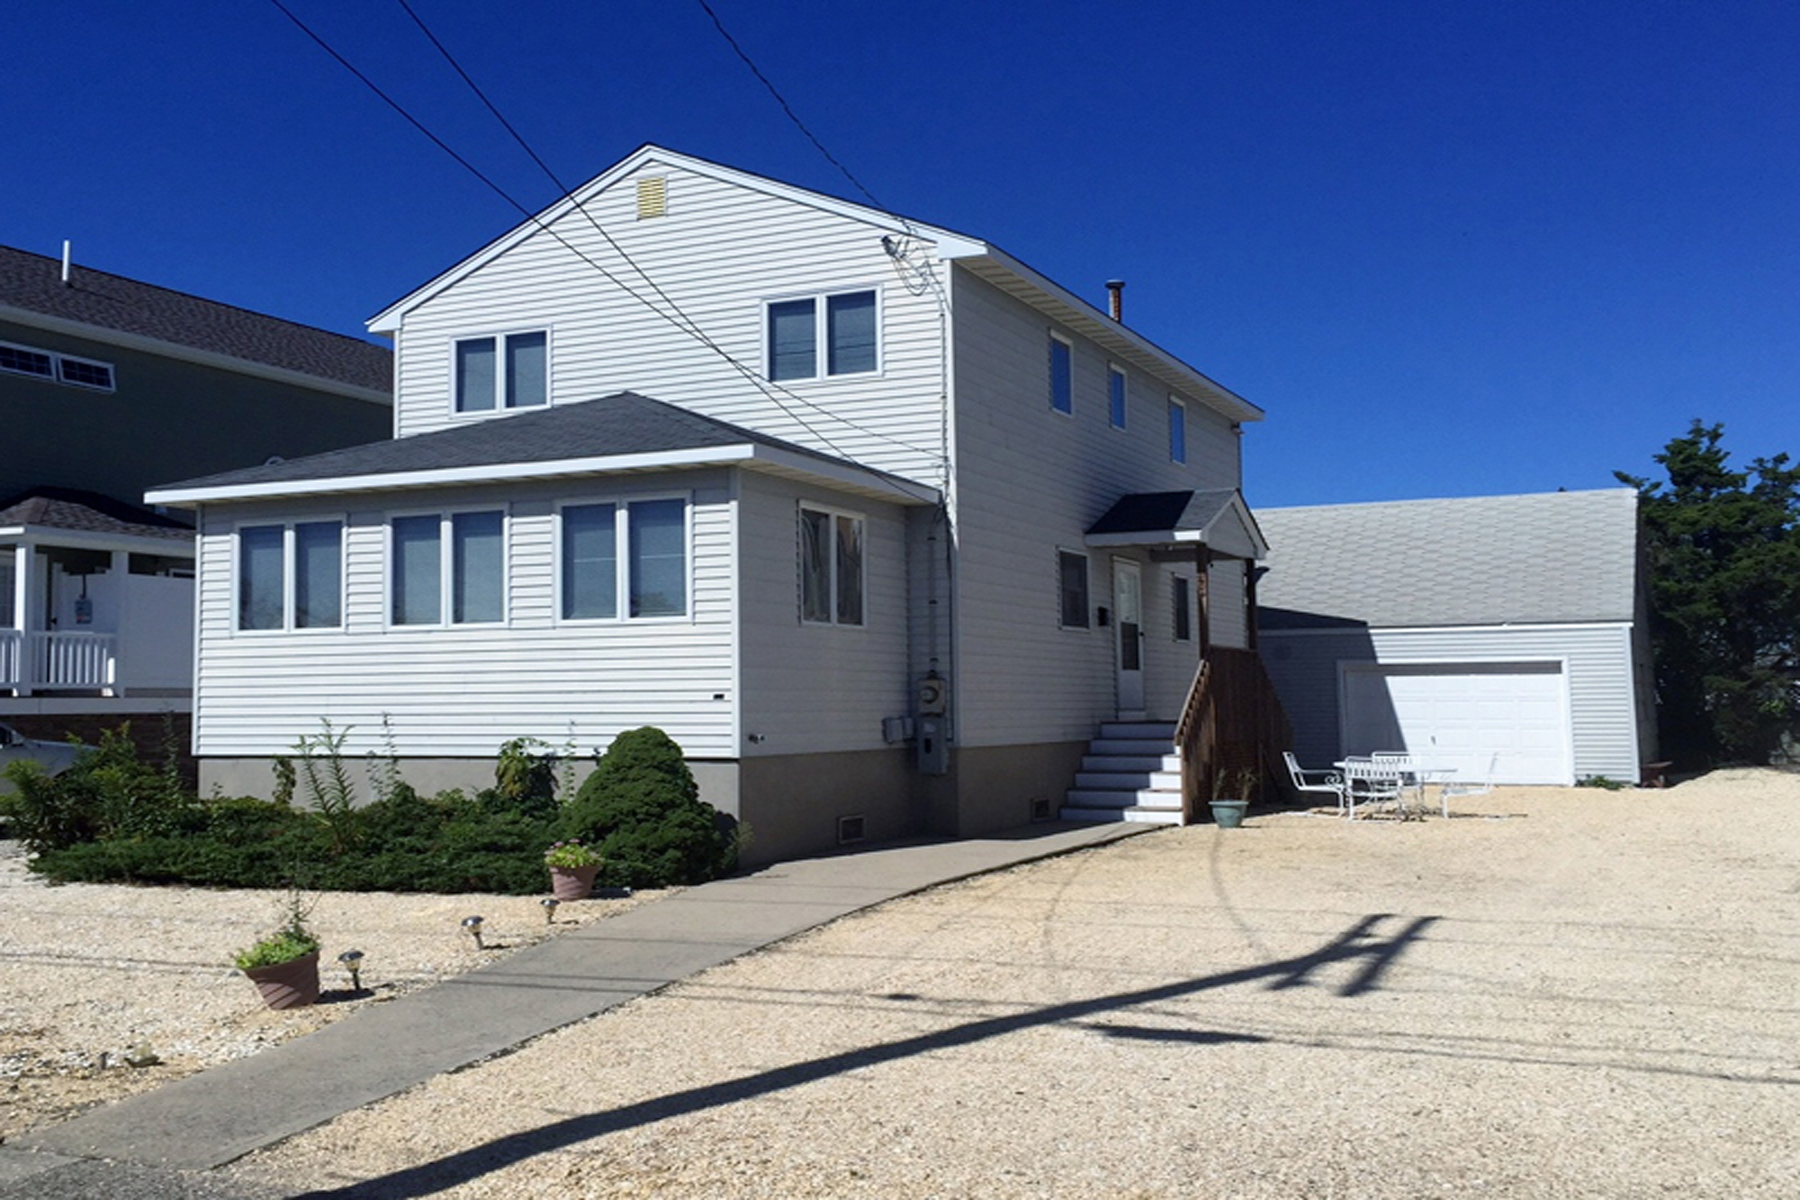 Maison unifamiliale pour l Vente à Well-Built Custom Home 204 12th Avenue Seaside Park, New Jersey, 08752 États-Unis